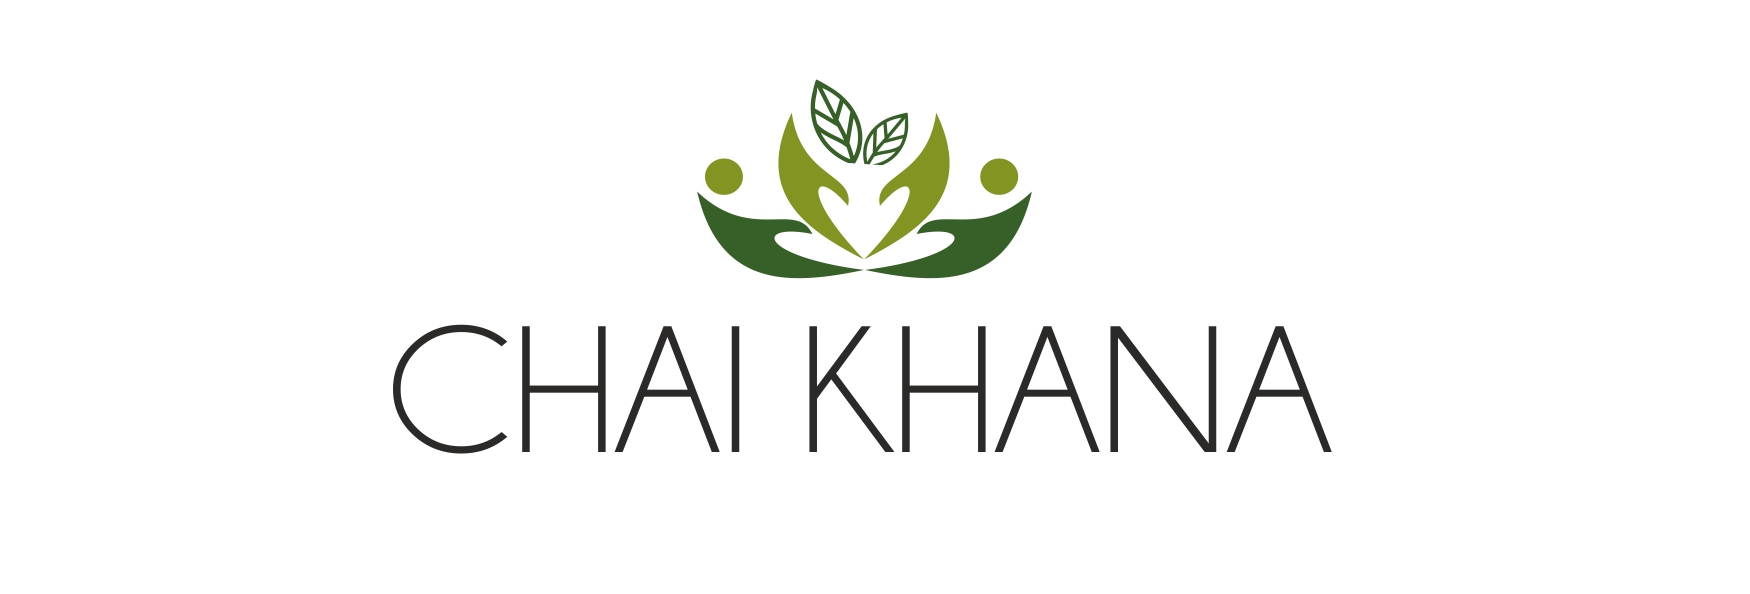 chaikhana new Logo.jpg